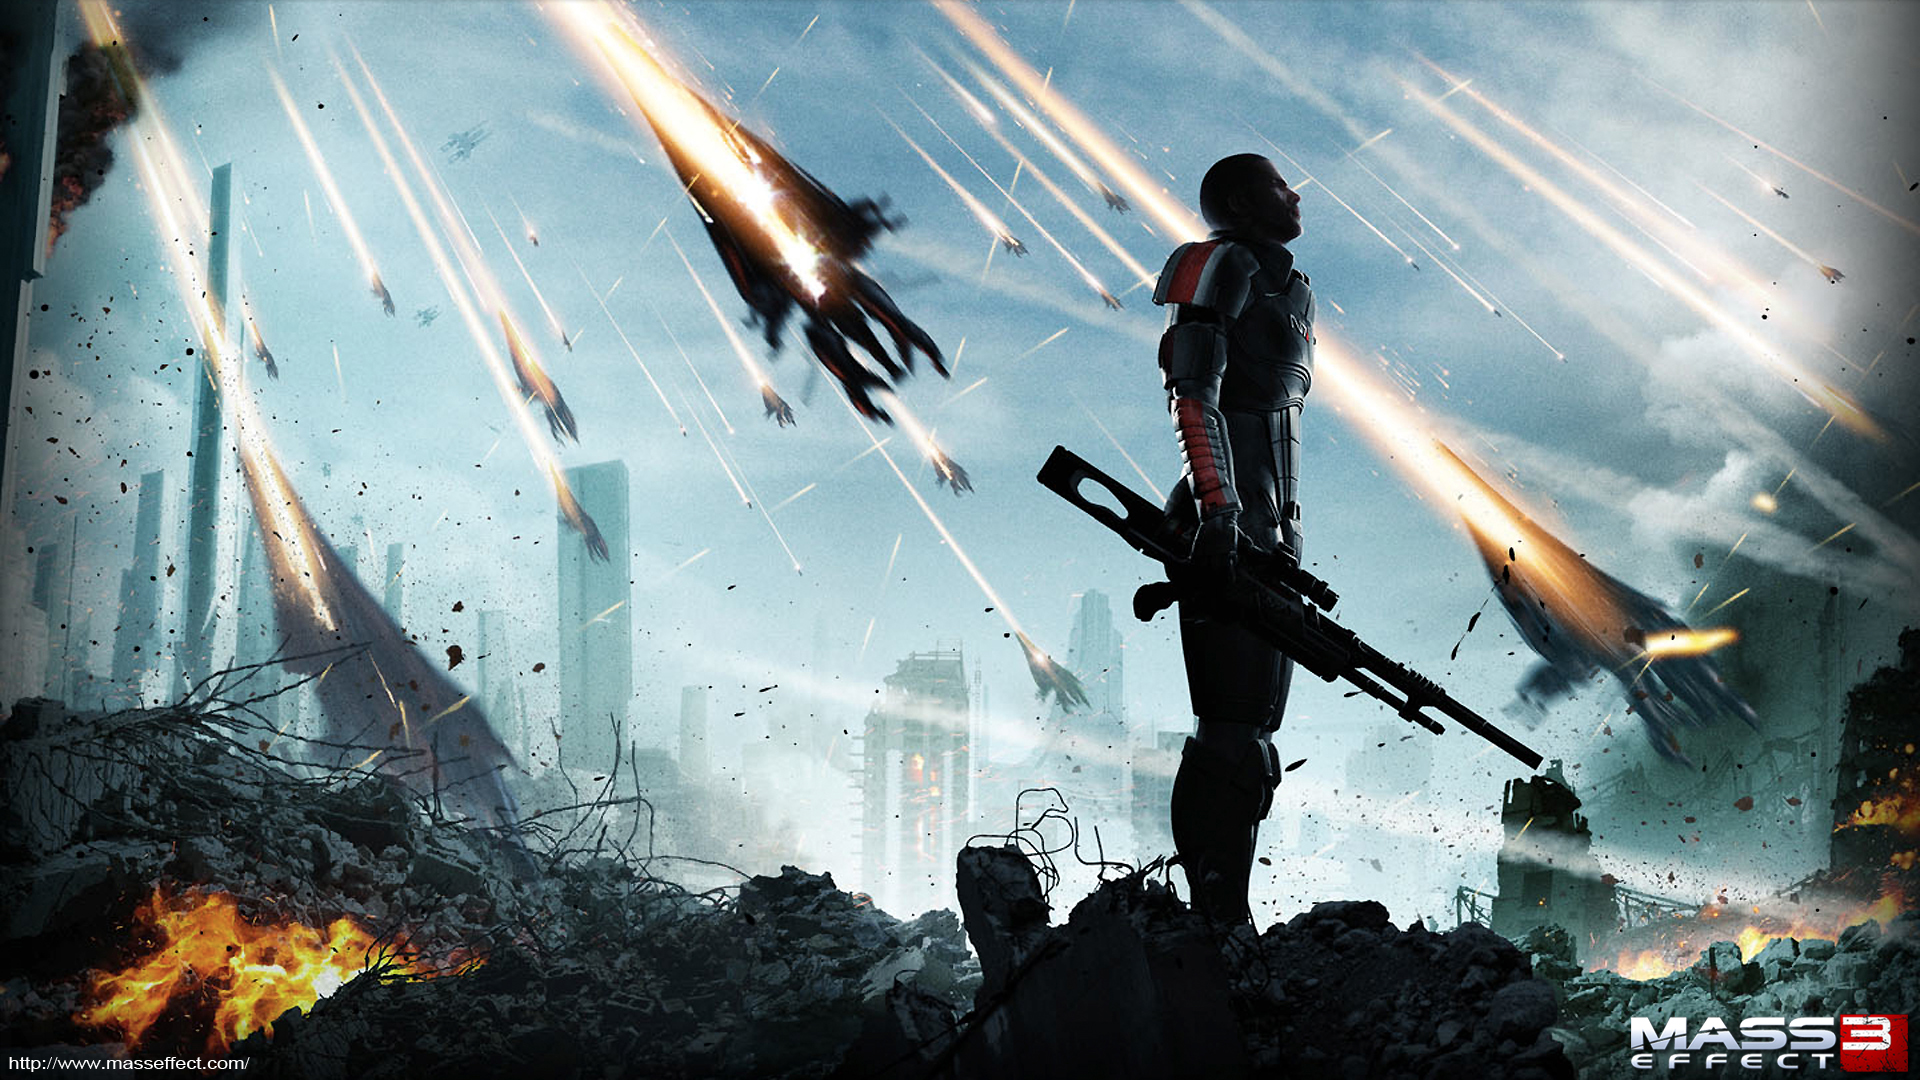 Mass Effect 3 and the terrible, horrible, no good, very bad ending - That VideoGame Blog